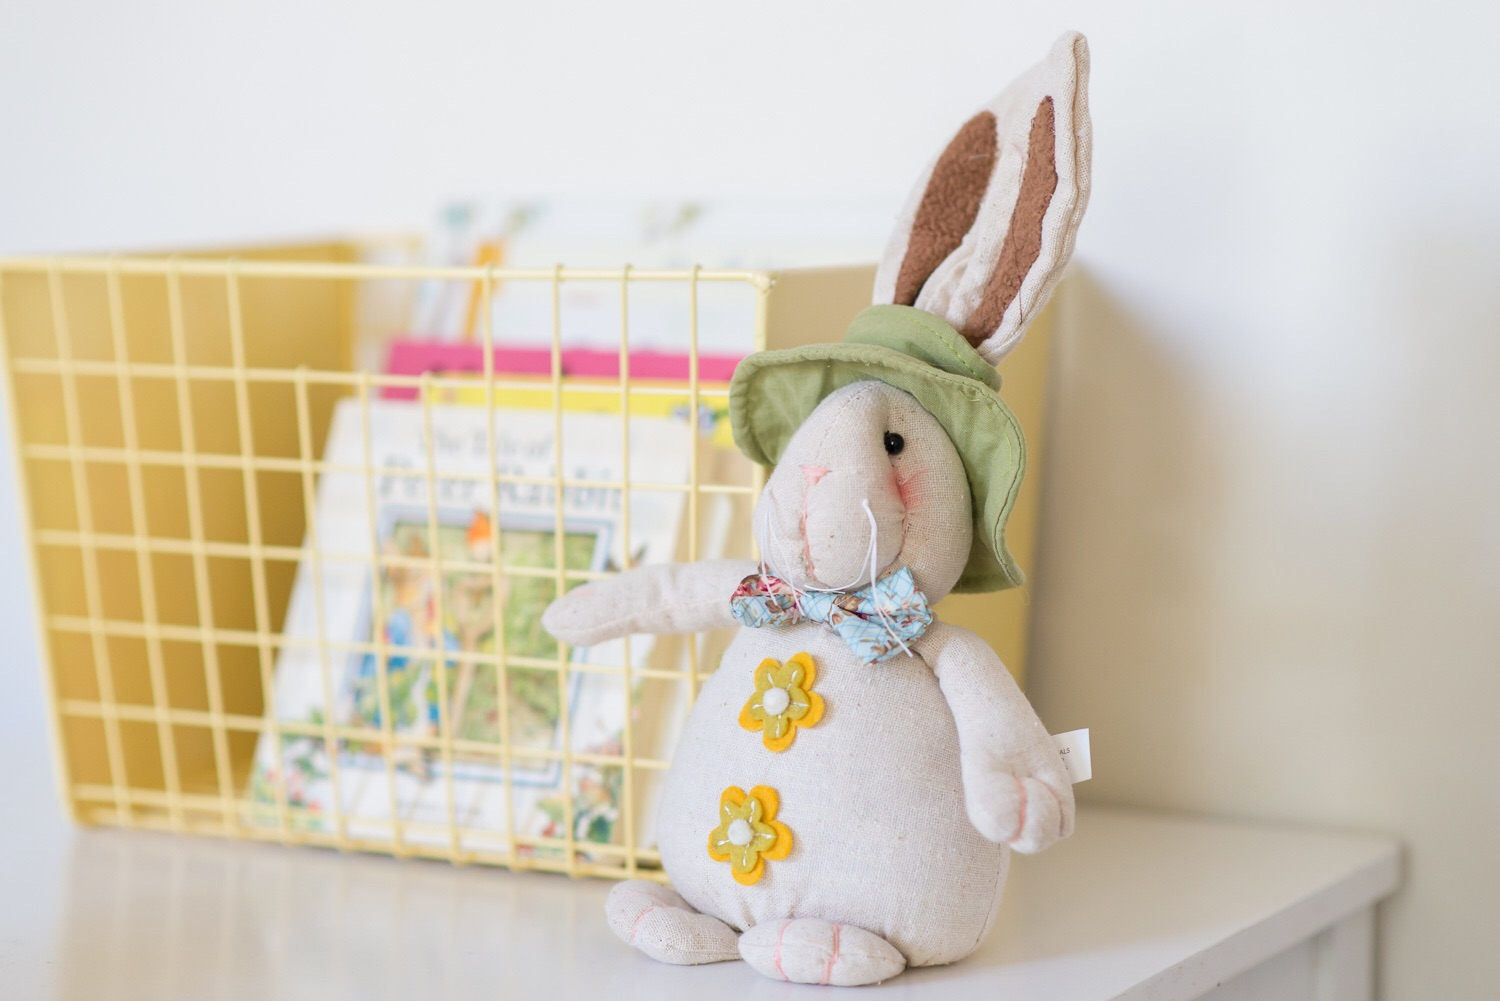 Our Easter book collection which is sadly less than this now as our airconditioner leaked water all over them and I had to throw half of them out 😞 Mr bunny from  Target  a couple of years ago.